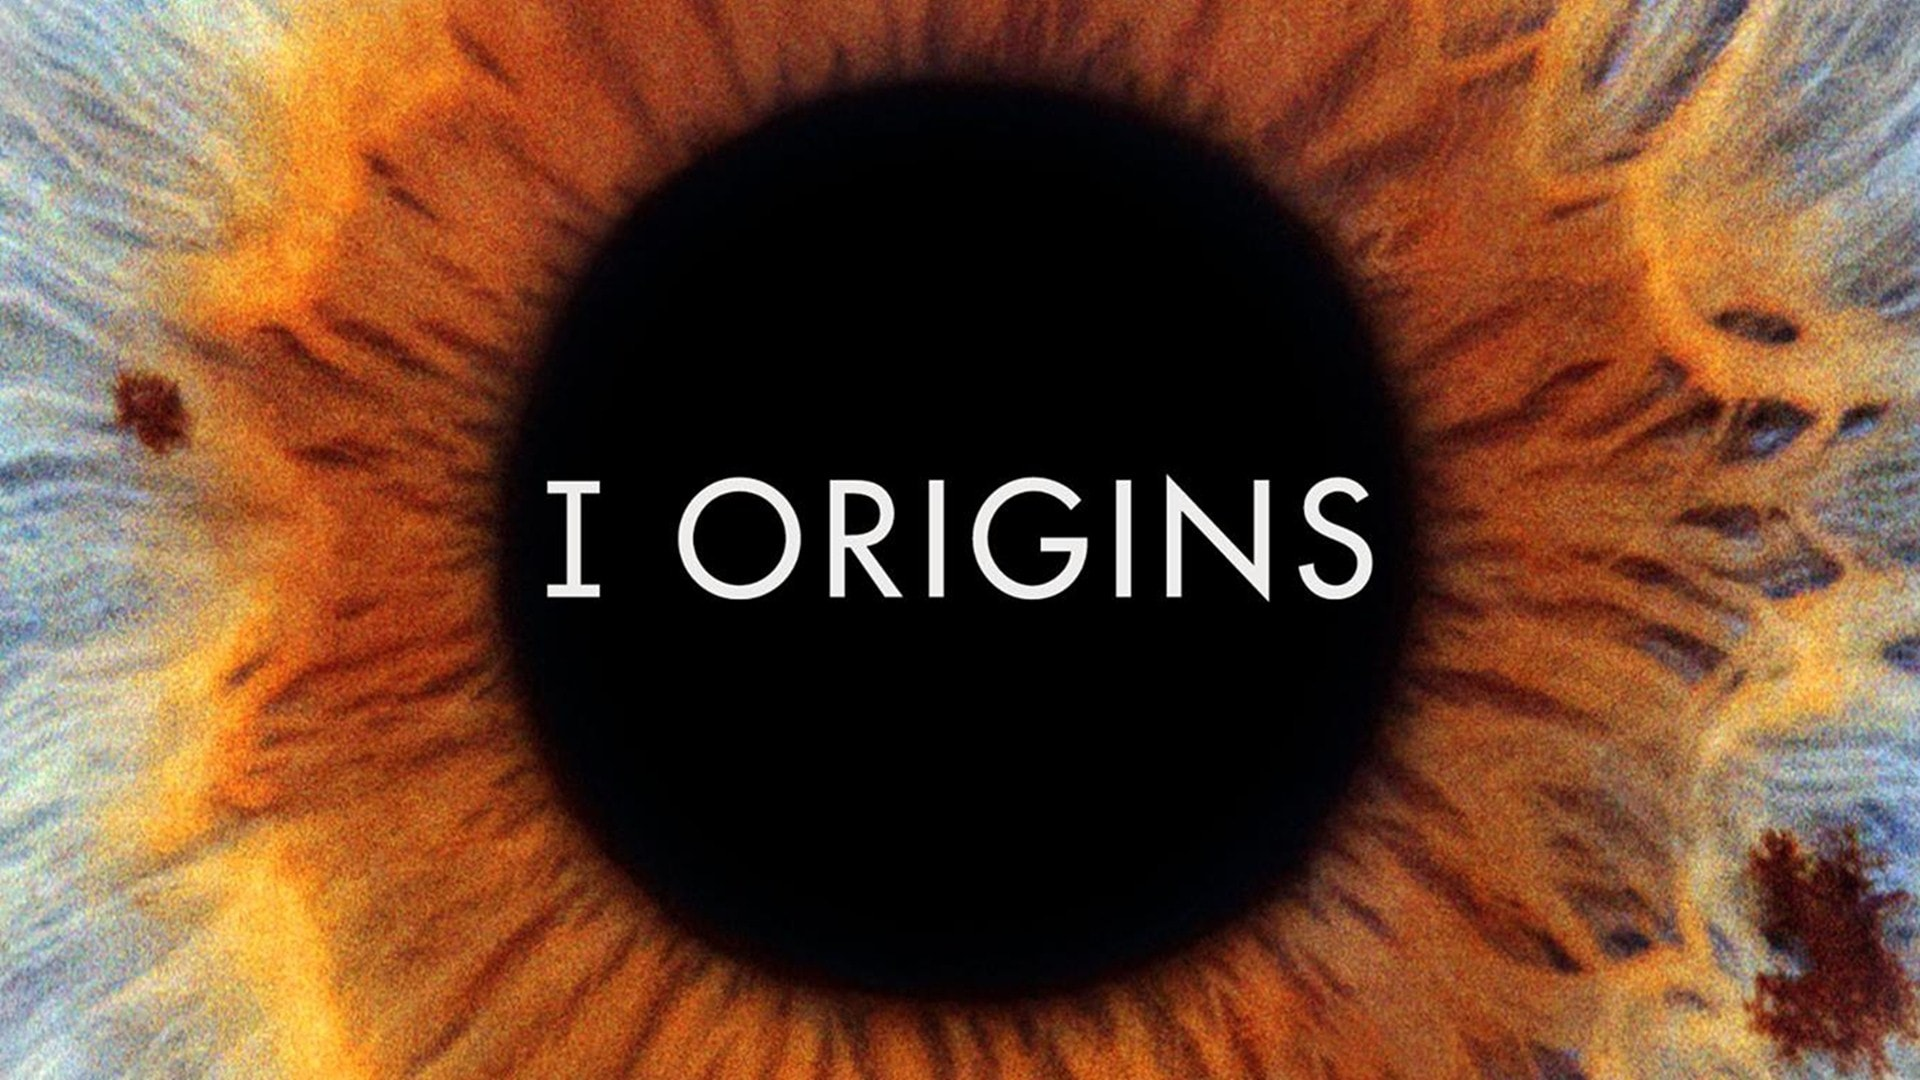 I Origins Wallpapers